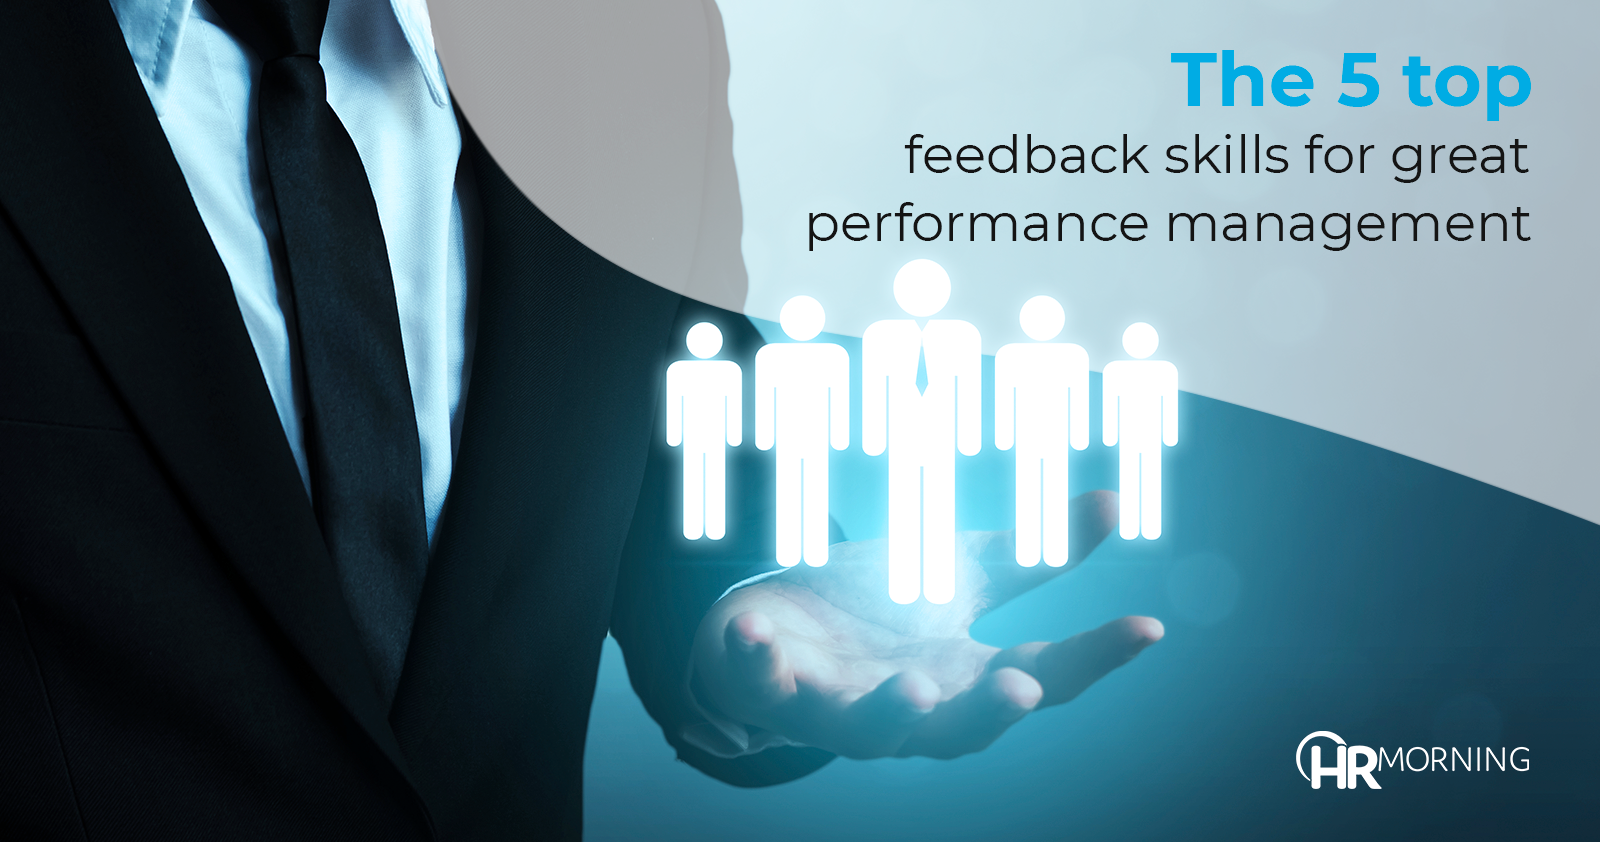 5 top feedback skills for great performance management